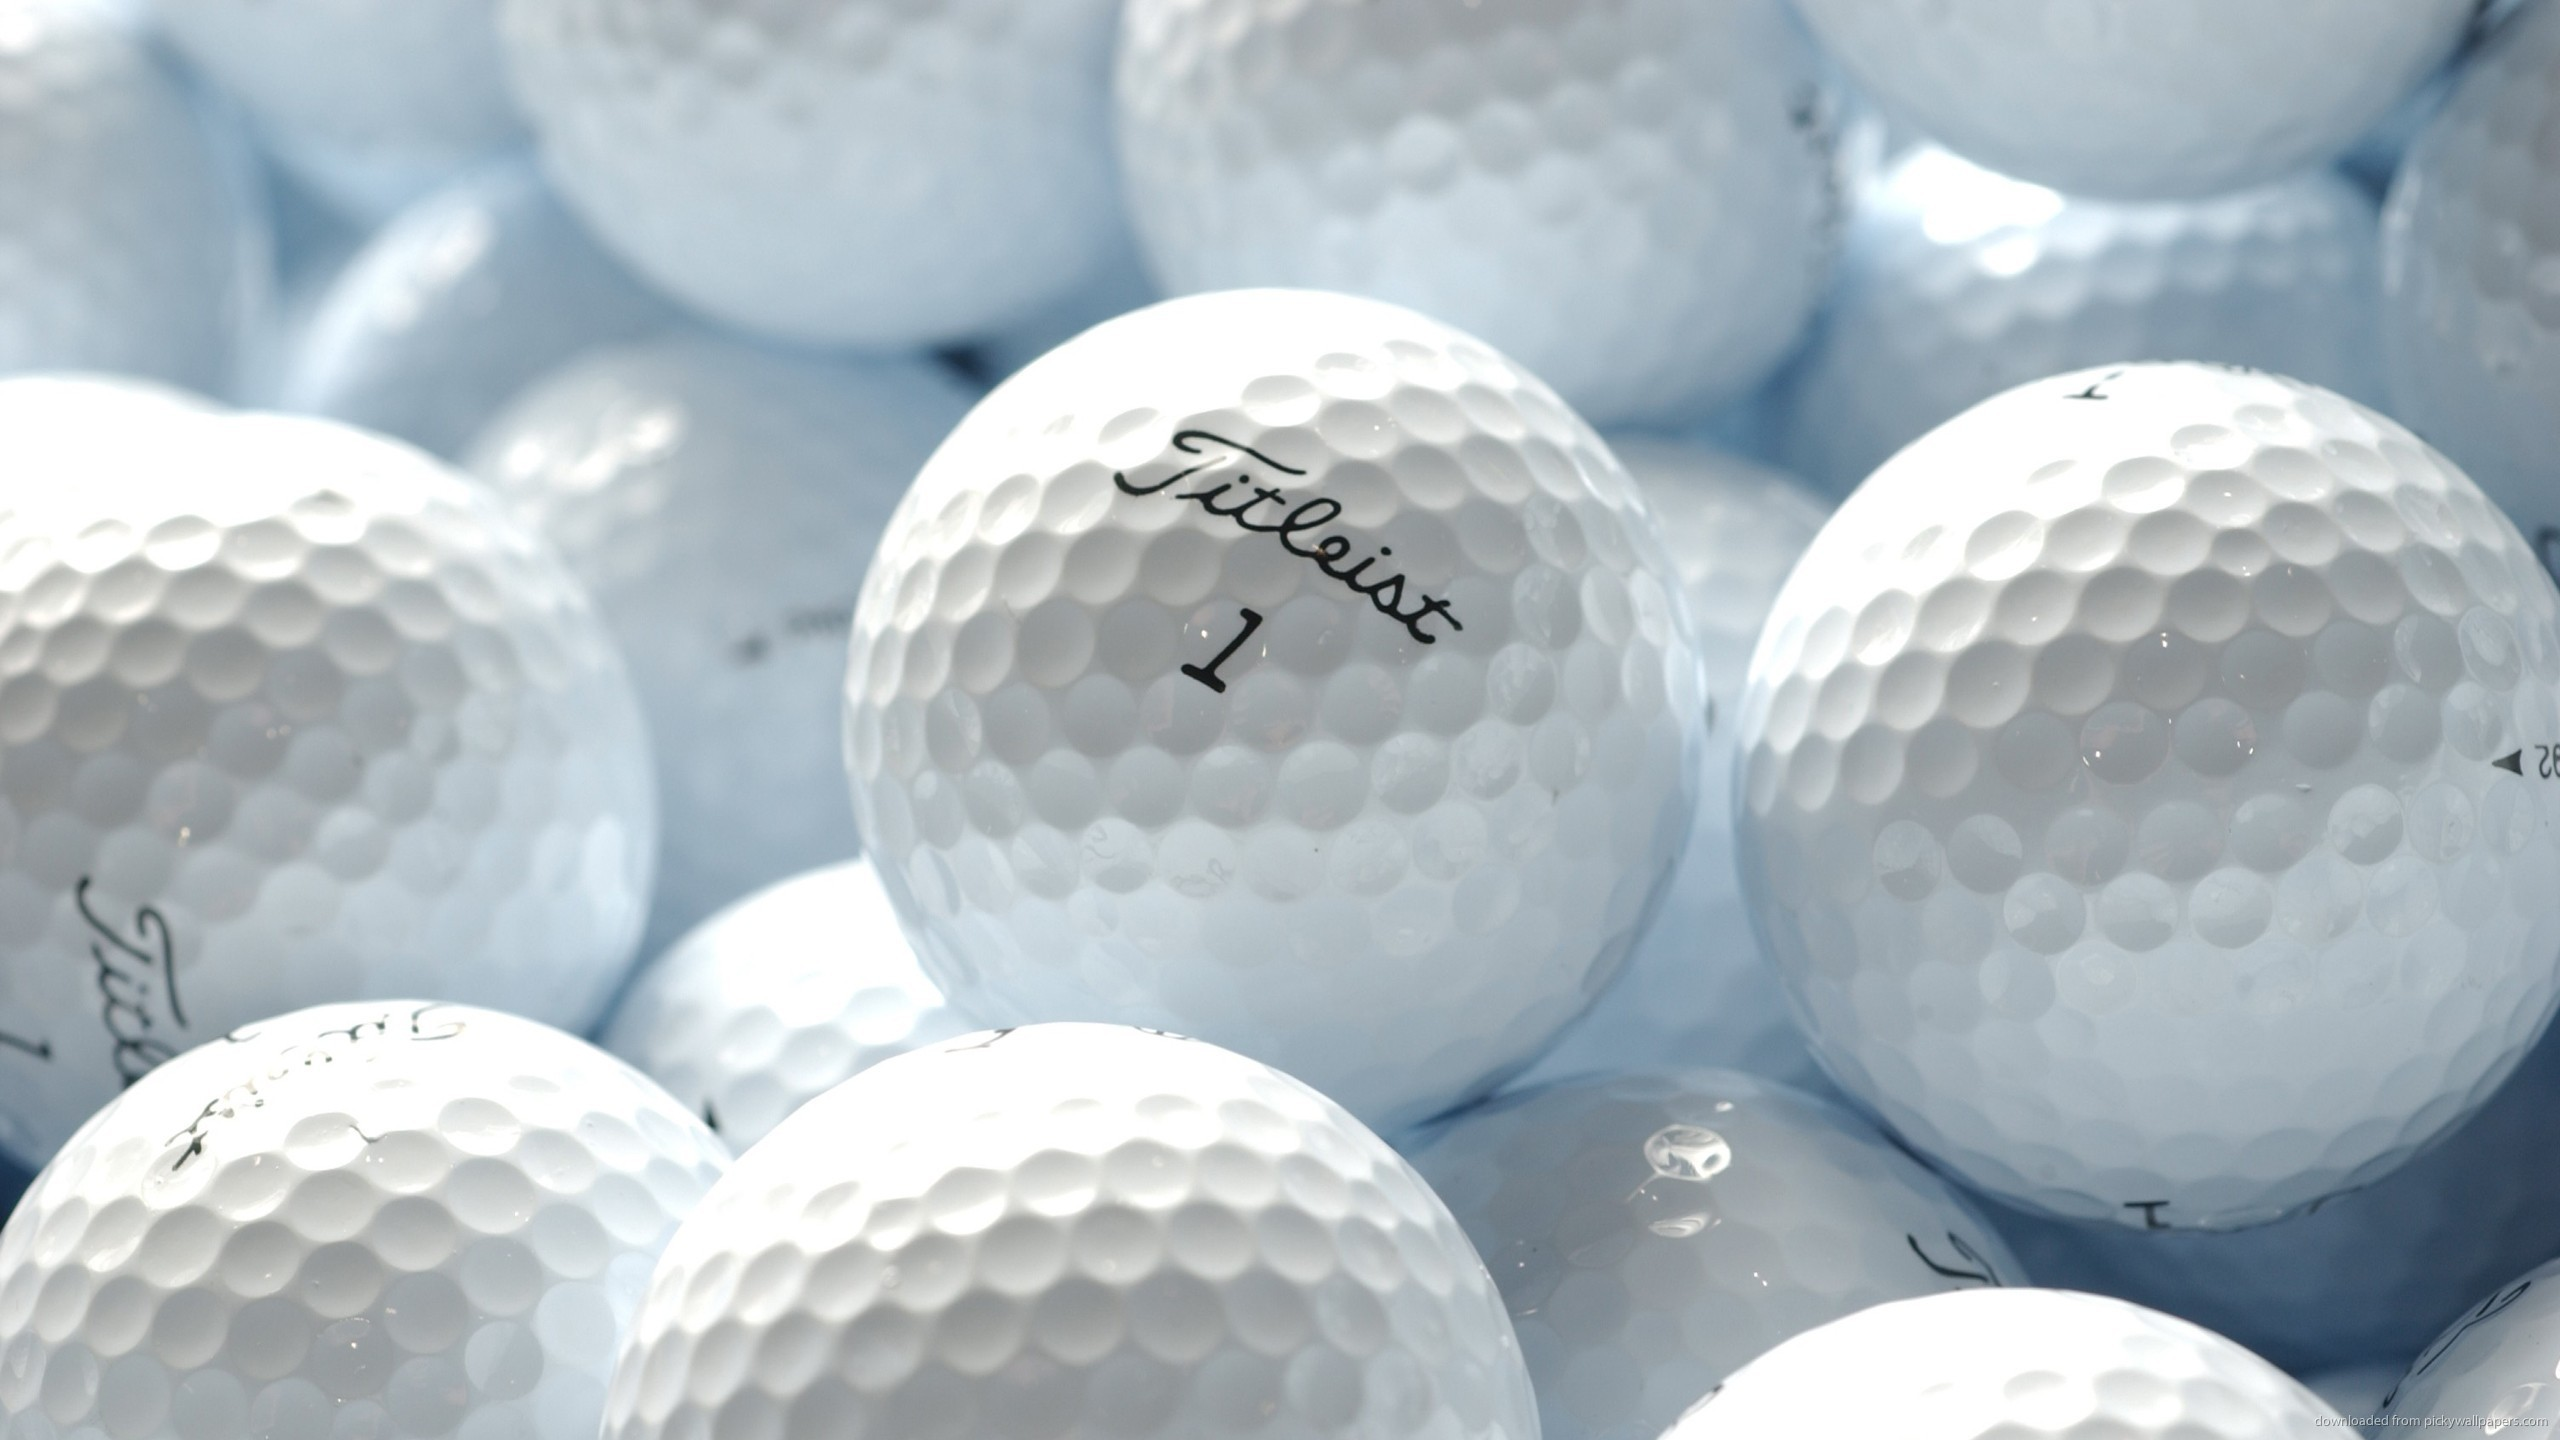 DOWNLOAD WALLPAPER Titleist - FULL SIZE ...